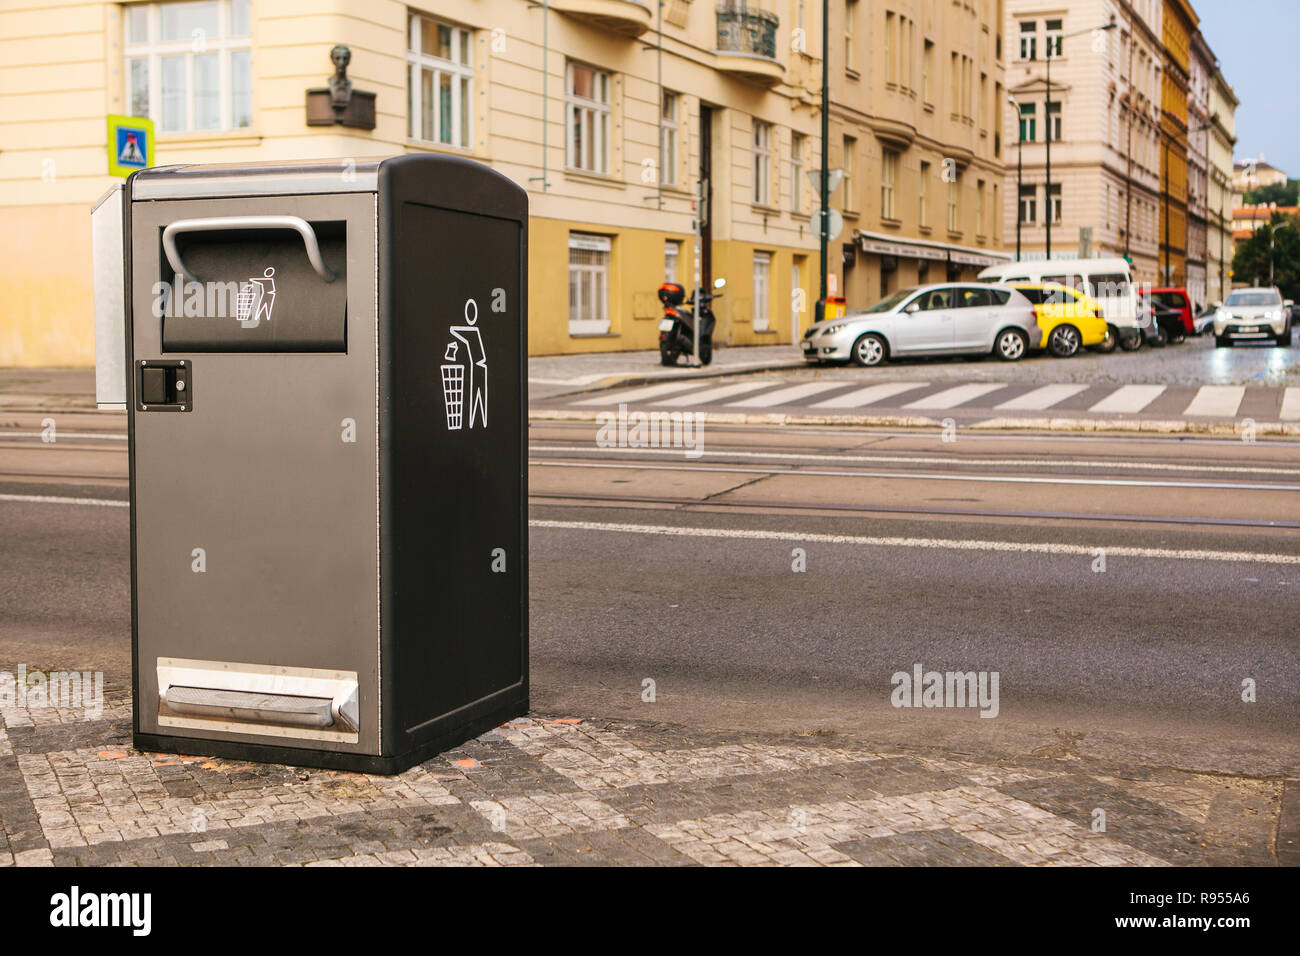 A modern clever trash can on the street in Prague in the Czech Republic. Collection of waste in Europe for subsequent disposal. Eco-friendly waste collection - Stock Image